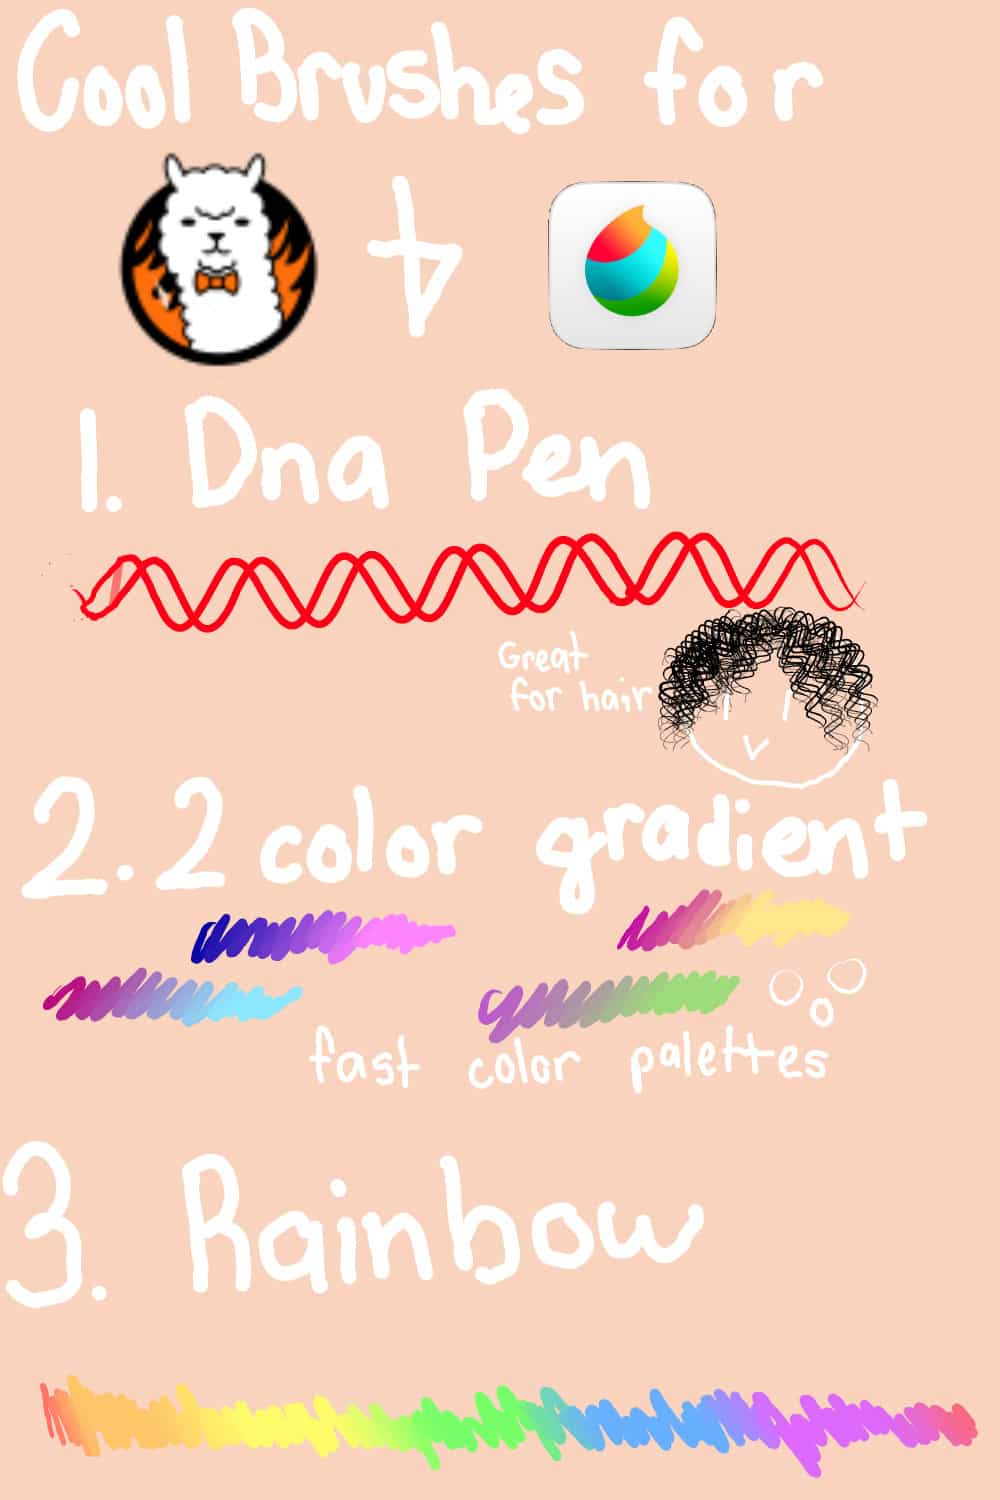 52. DNA Pen 2 Color Gradient and Rainbow Brushes